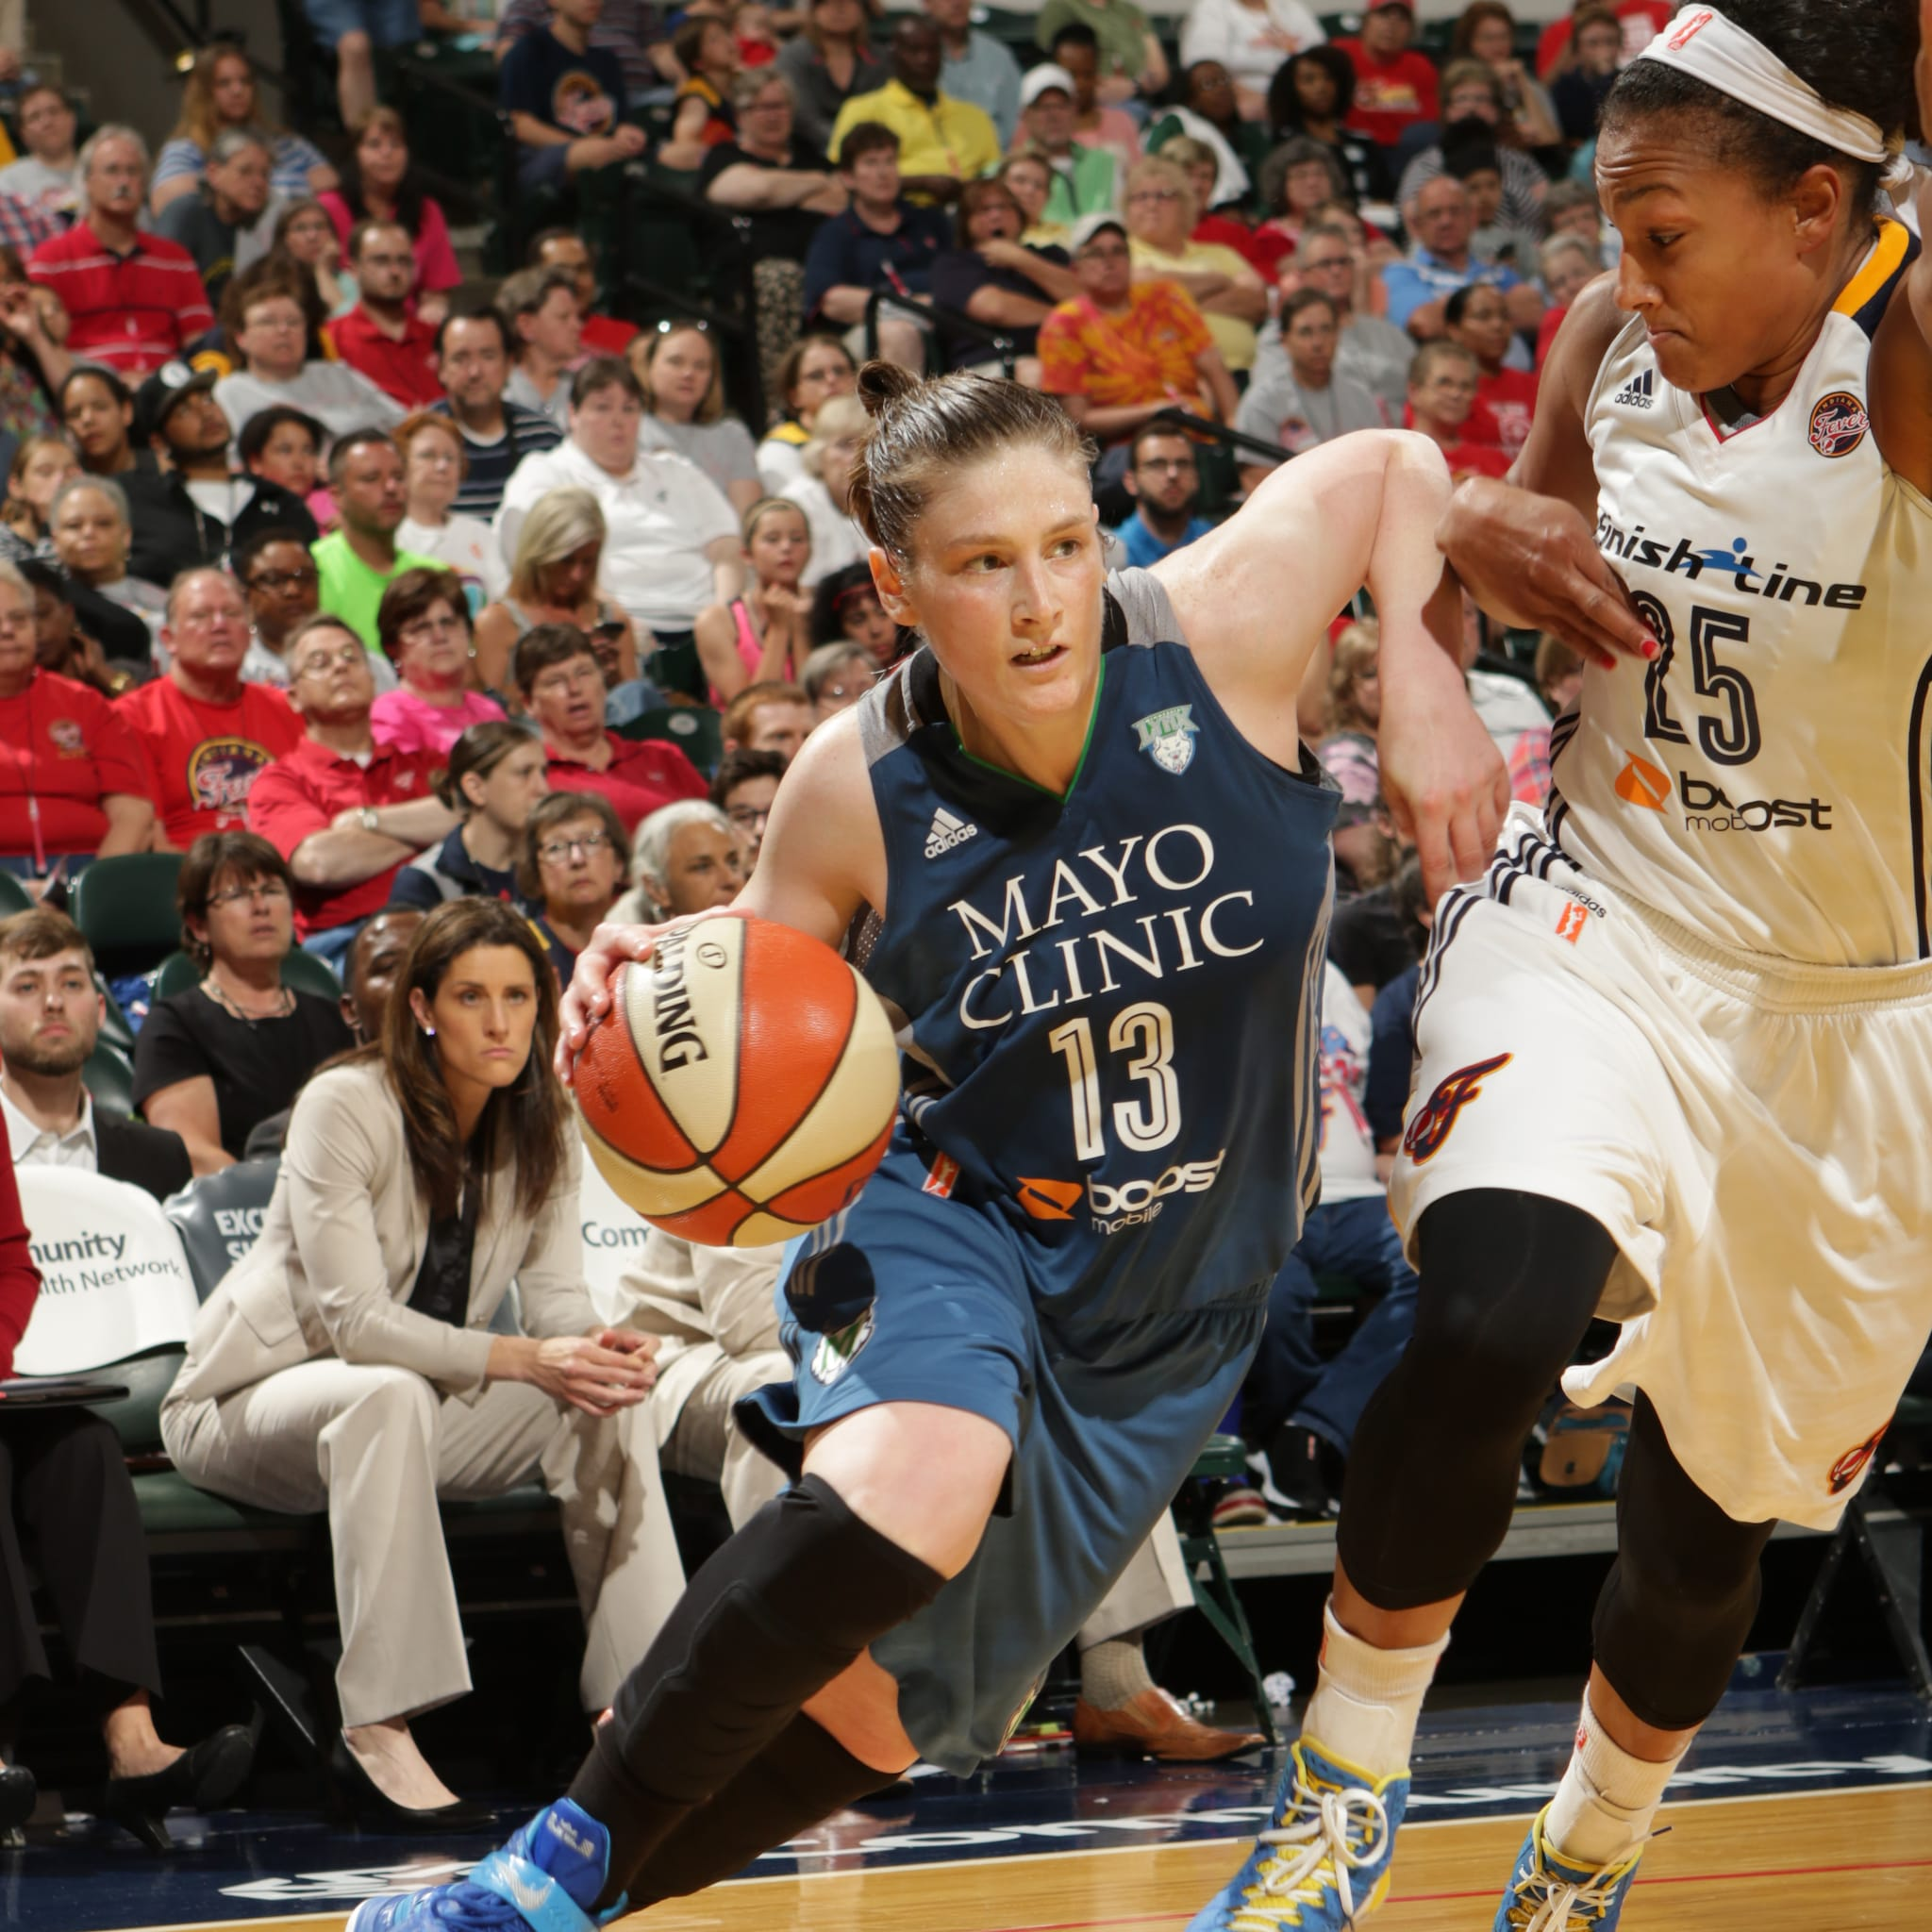 Lynx guard Lindsay Whalen had another great game against the Fever, scoring 17 points to go with her four rebounds and five assists.